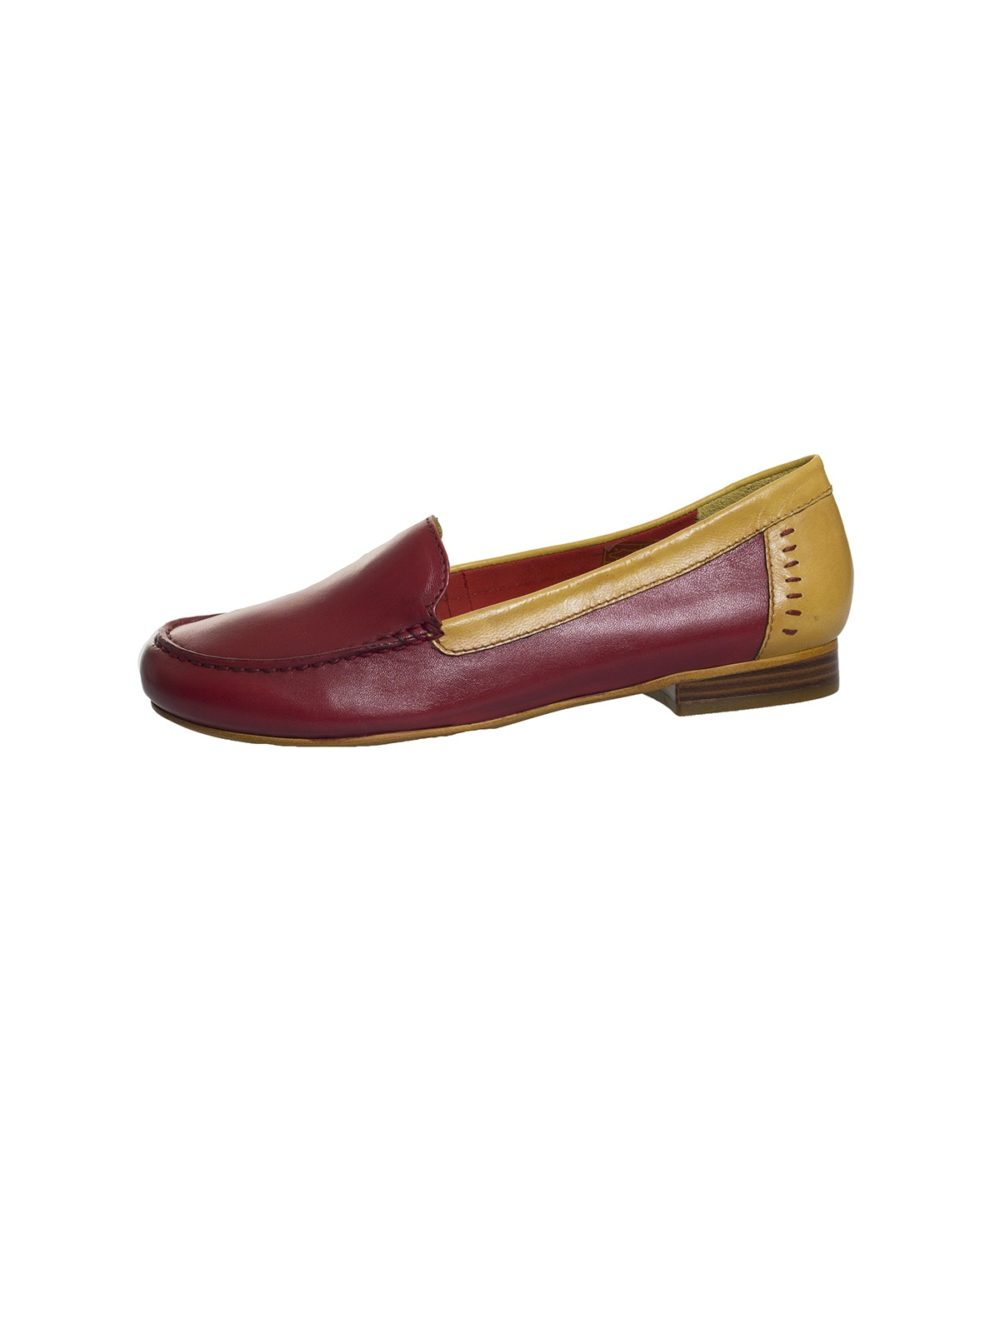 Silke Shoe Regarde le Ciel Katie Kerr Women's Shoes